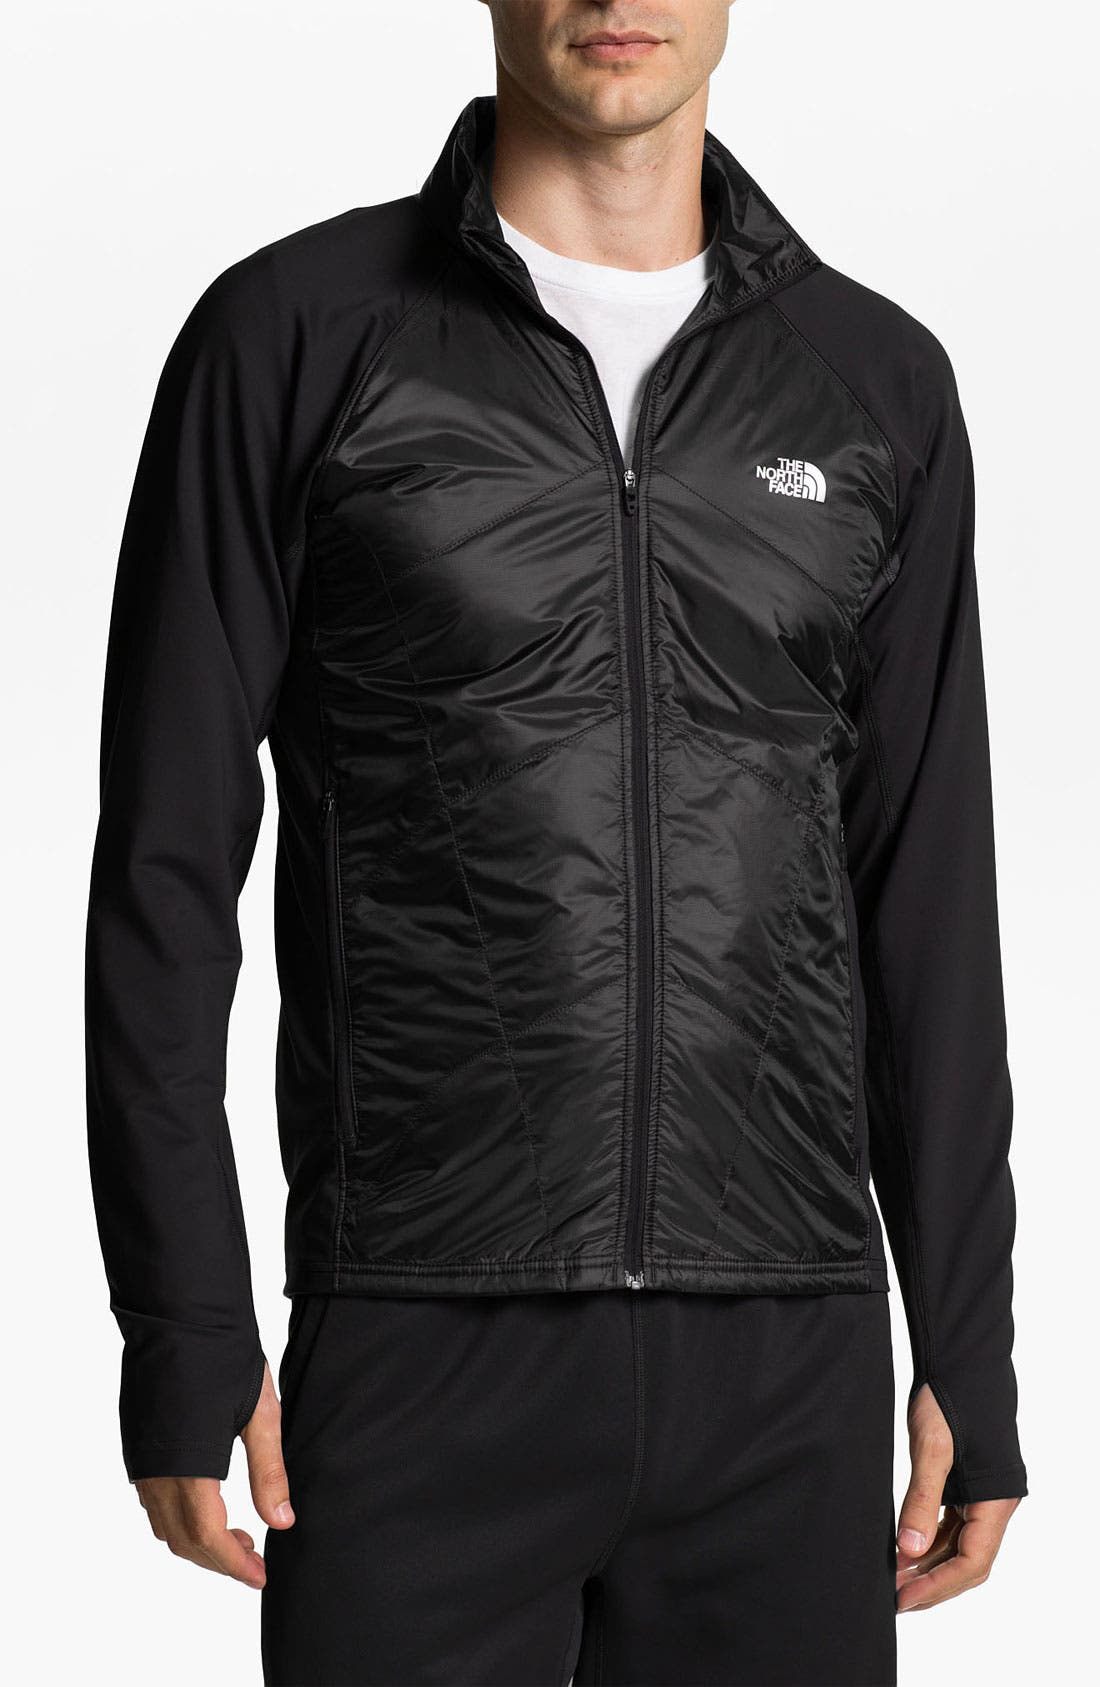 Alternate Image 1 Selected - The North Face 'Animagi - Performance Fit' Sport Jacket (Online Exclusive)